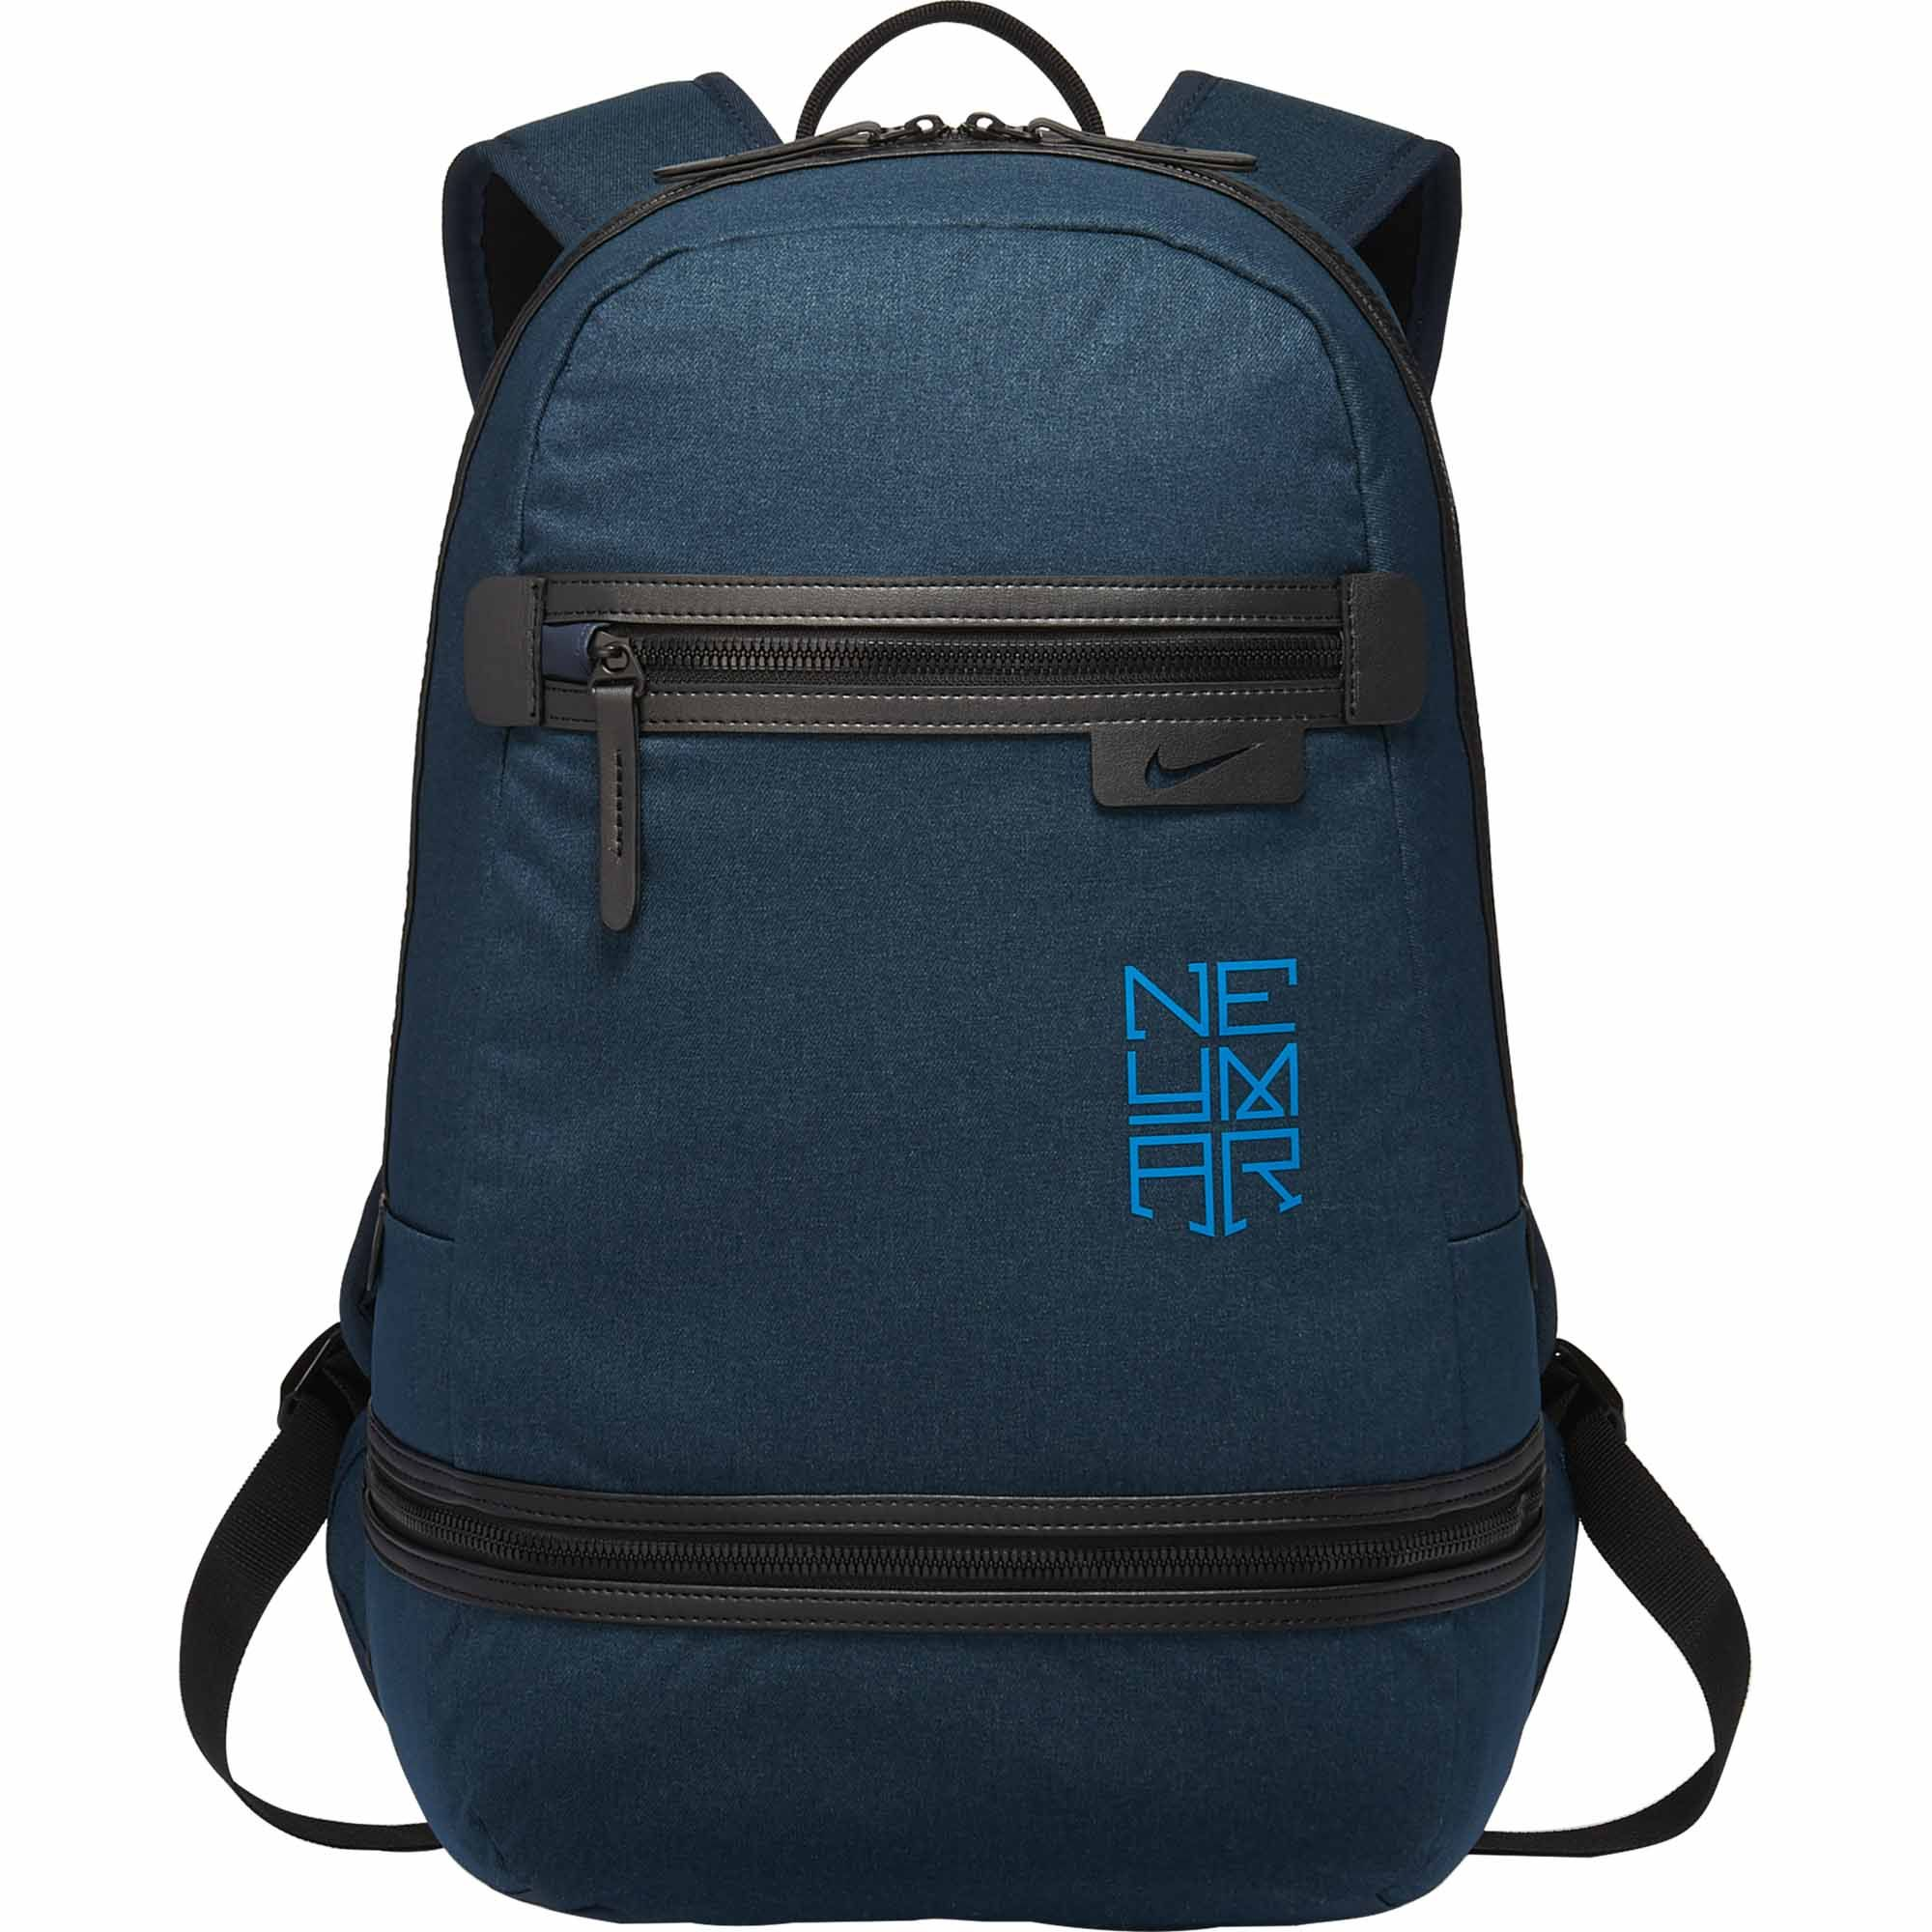 Nike Neymar Backpack. Shop for this bag at SoccerPro right now ... 38cbcaa25c0